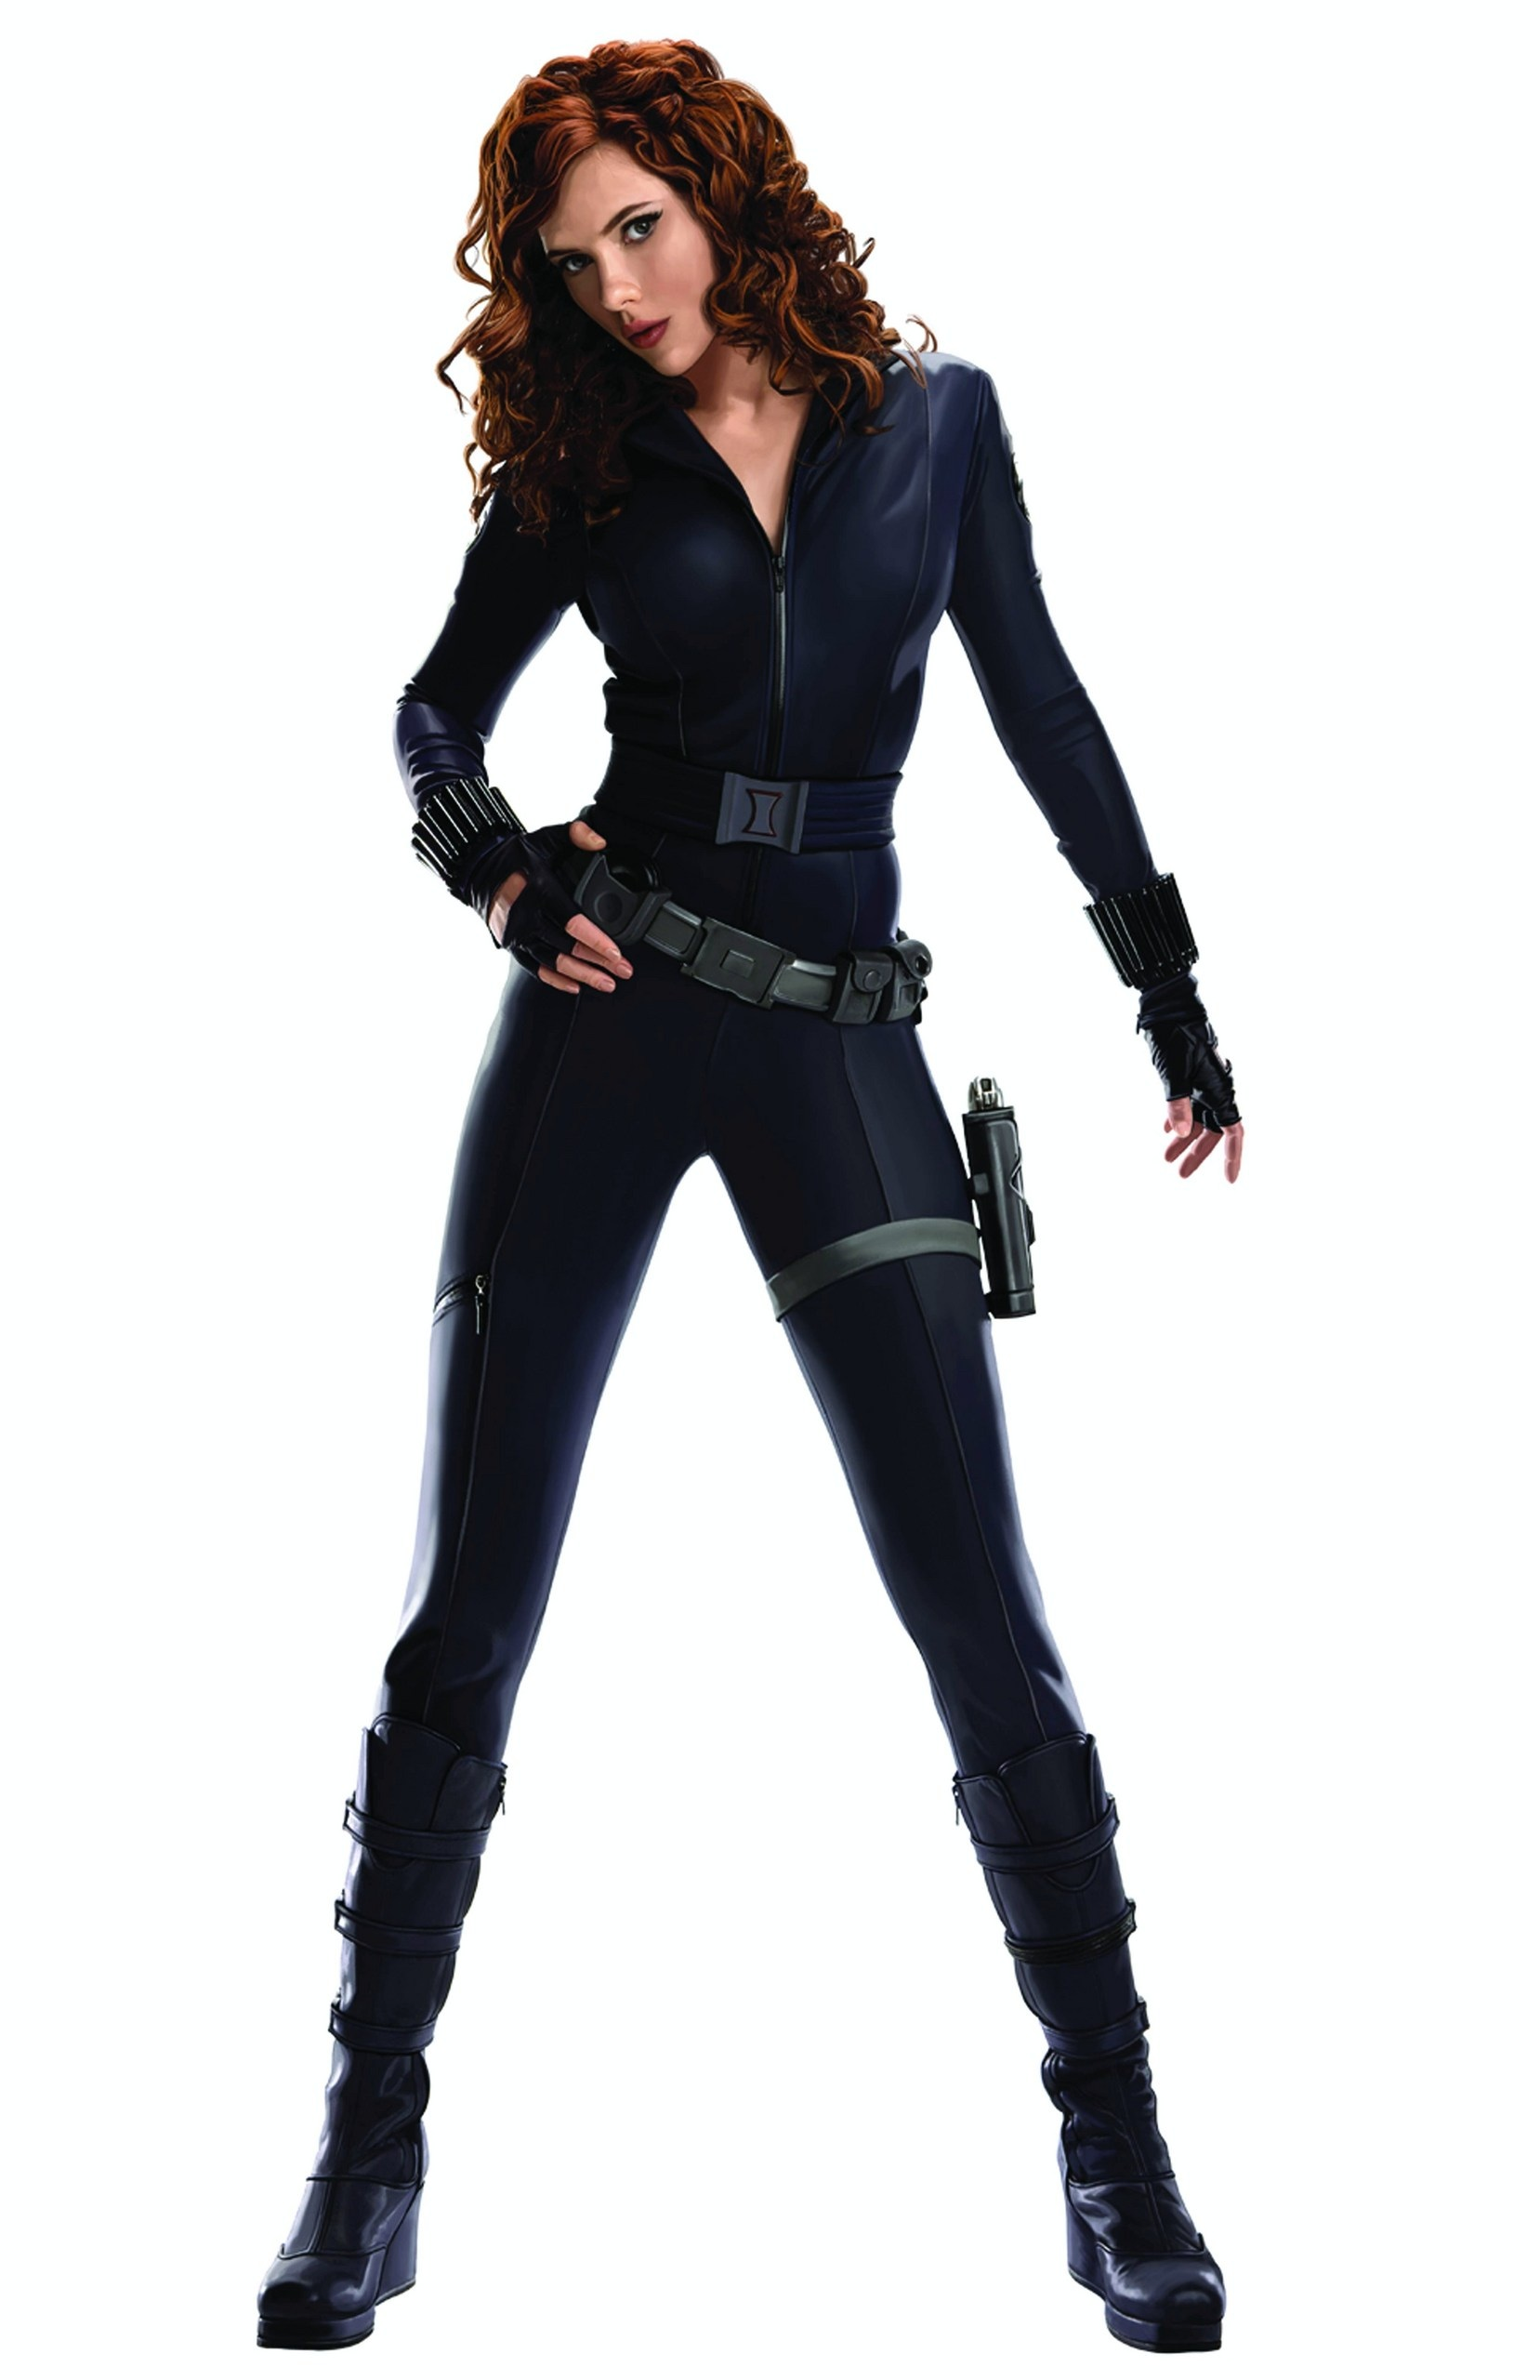 Marvel black widow - photo#30